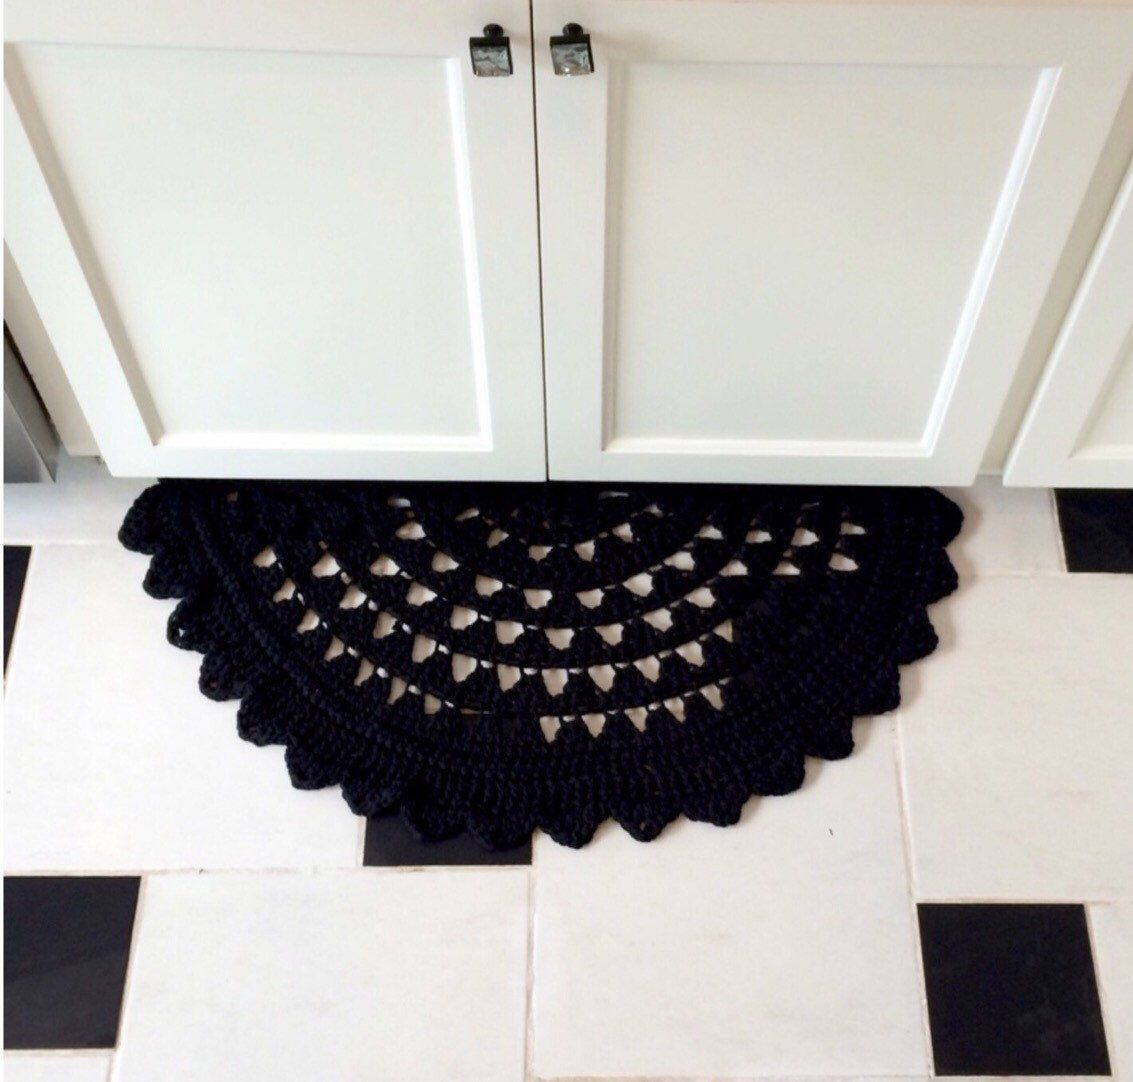 Hand Crocheted Semi Circle Rug- Black Cotton by YourHomeyHome on Etsy https://www.etsy.com/listing/219648466/hand-crocheted-semi-circle-rug-black